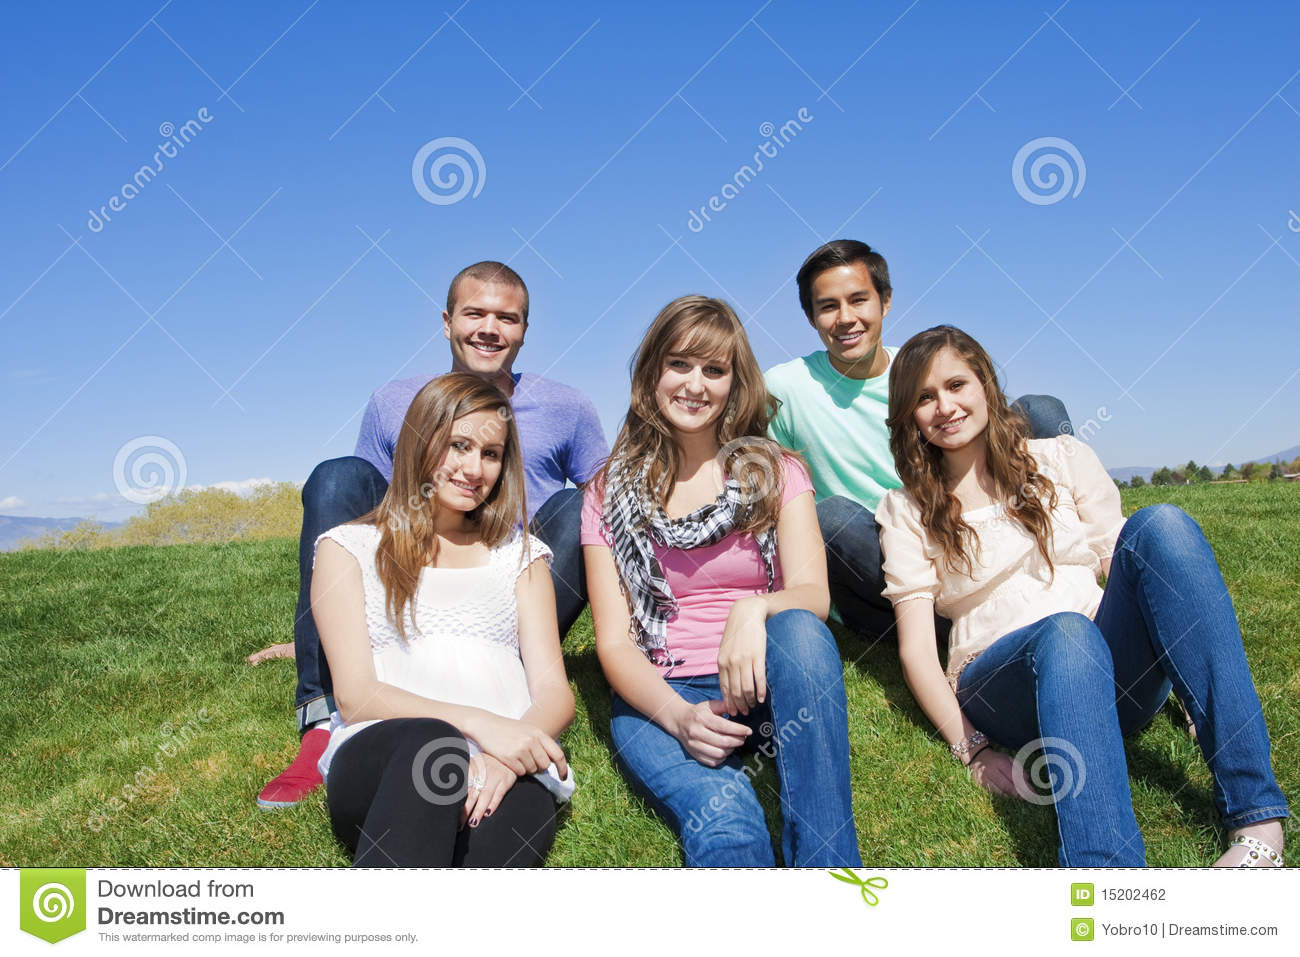 Smiling, Multi-racial group of Young Adults